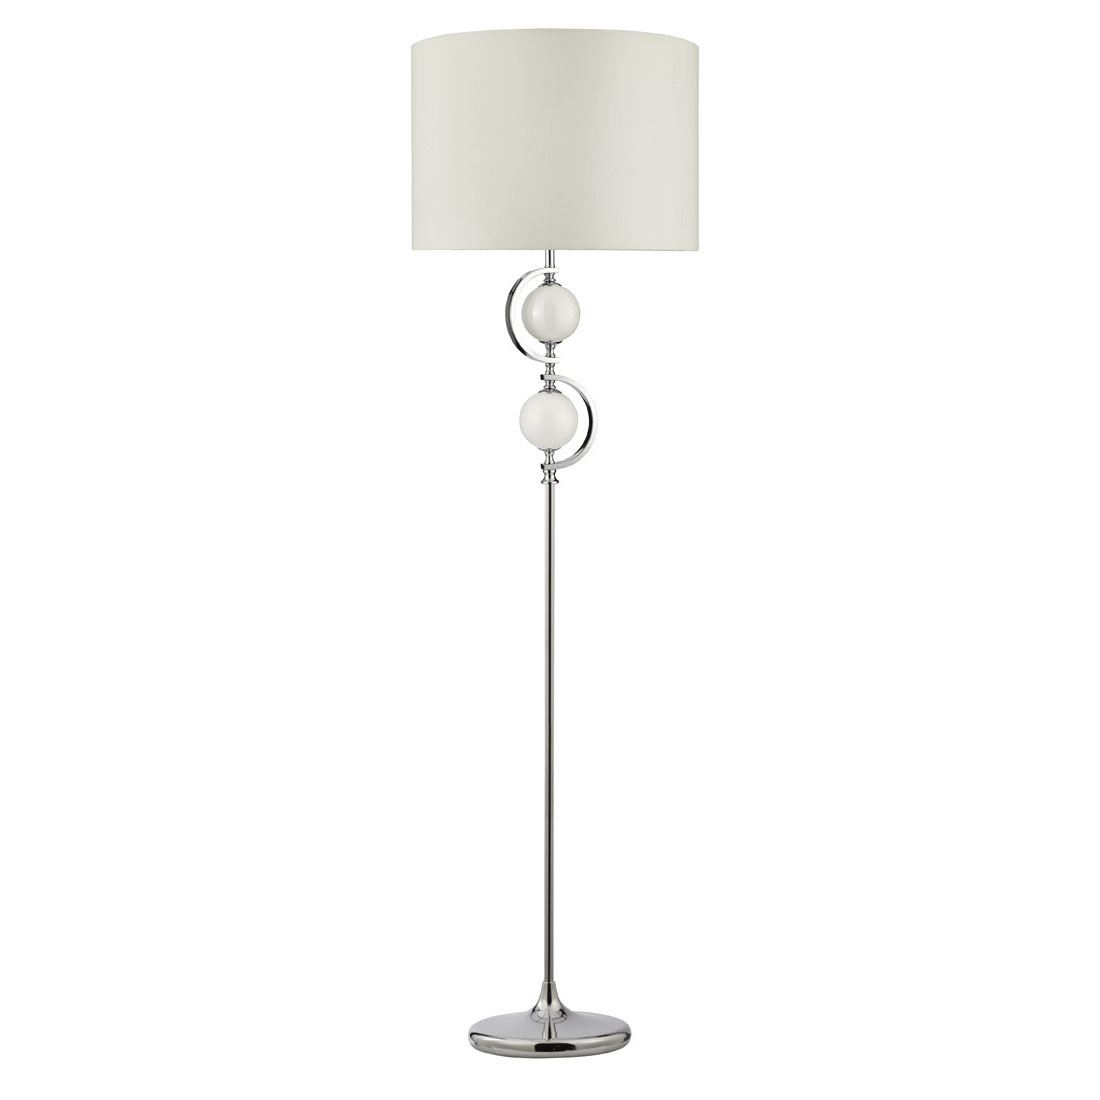 Floor Lamp - Chrome With White Glass Balls & Drum Shade